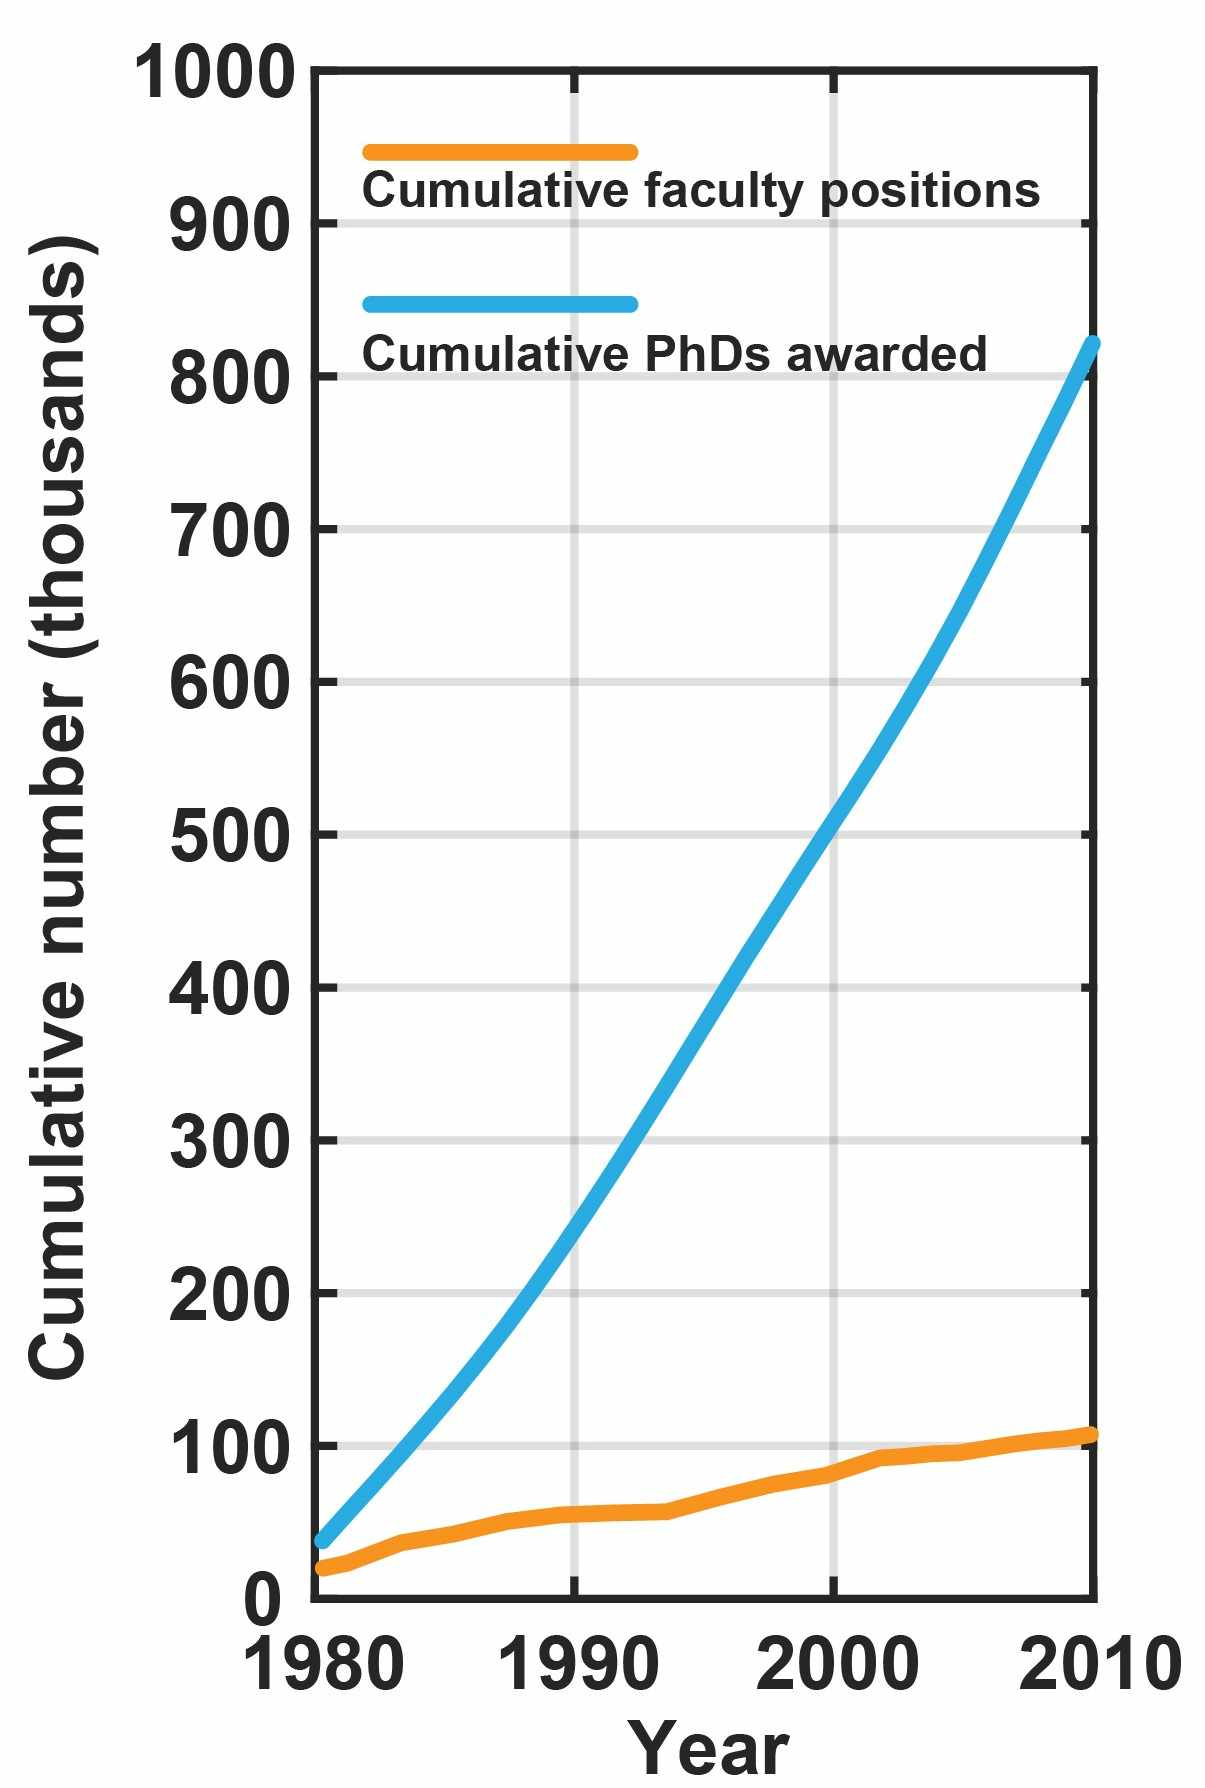 New faculty positions Vs New PhDs